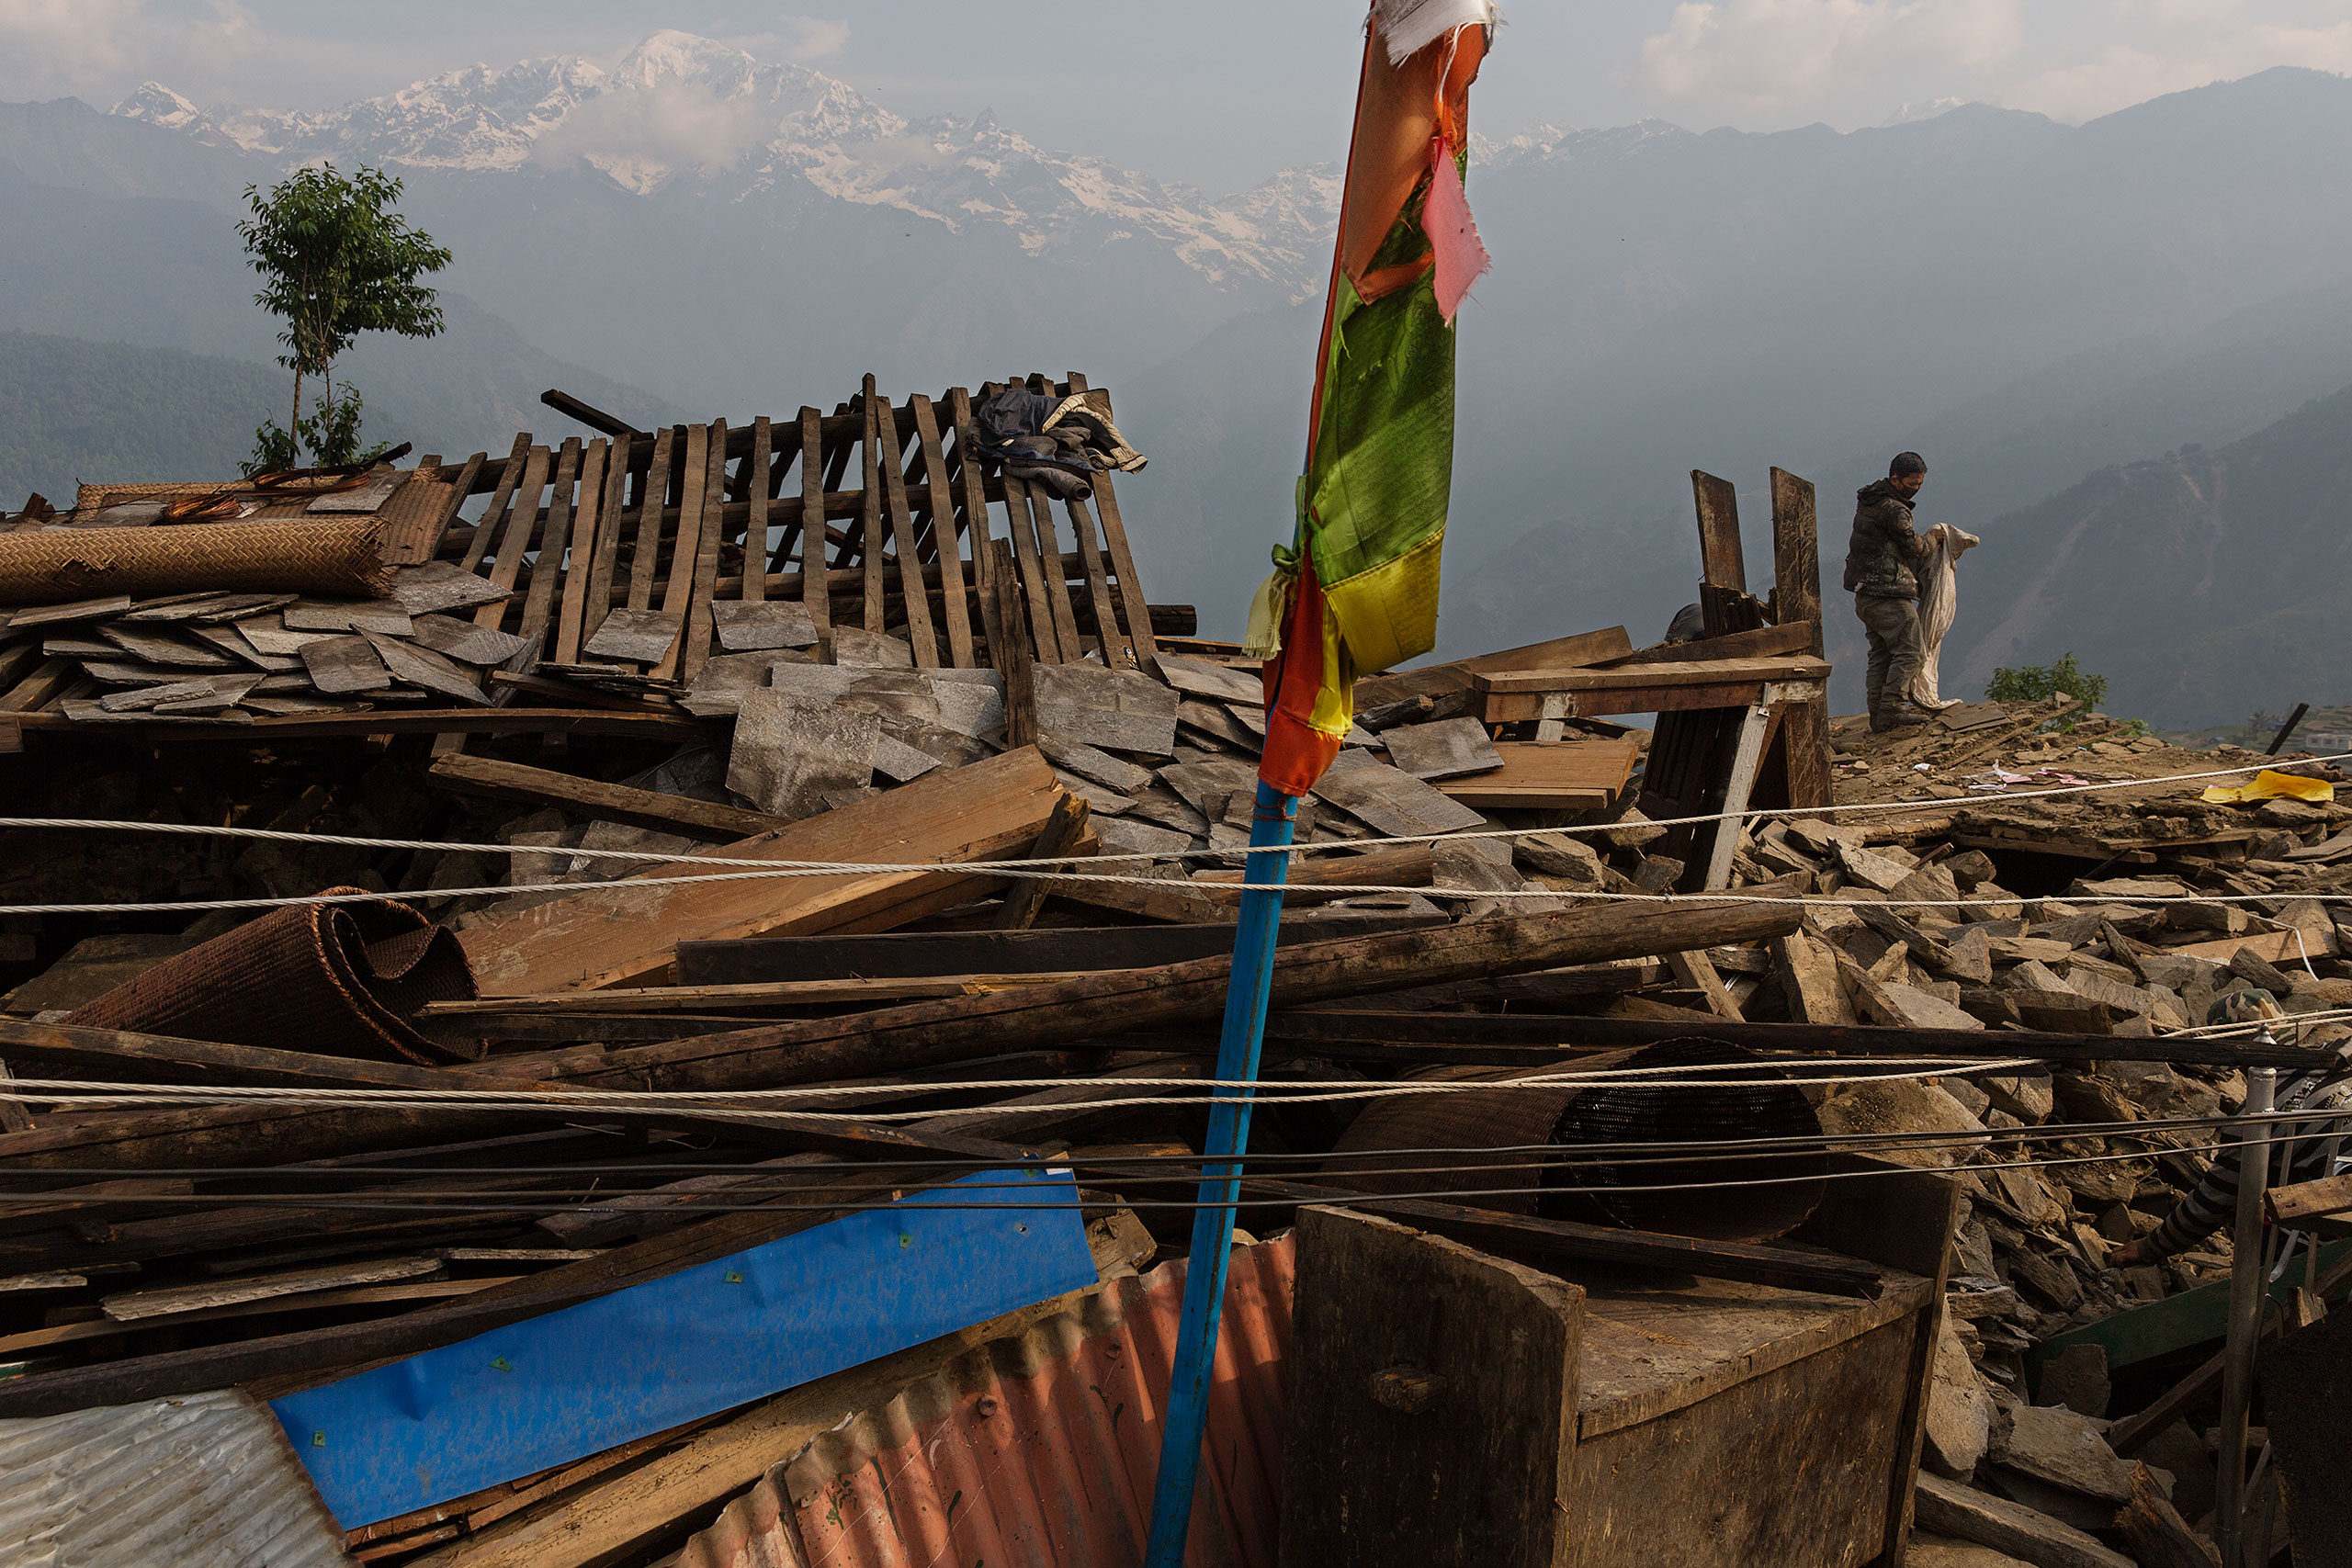 In Barpak, the epicenter of the earthquake, inhabitants sift through the wreckage looking for possessions from their destroyed houses, May 6, 2015.